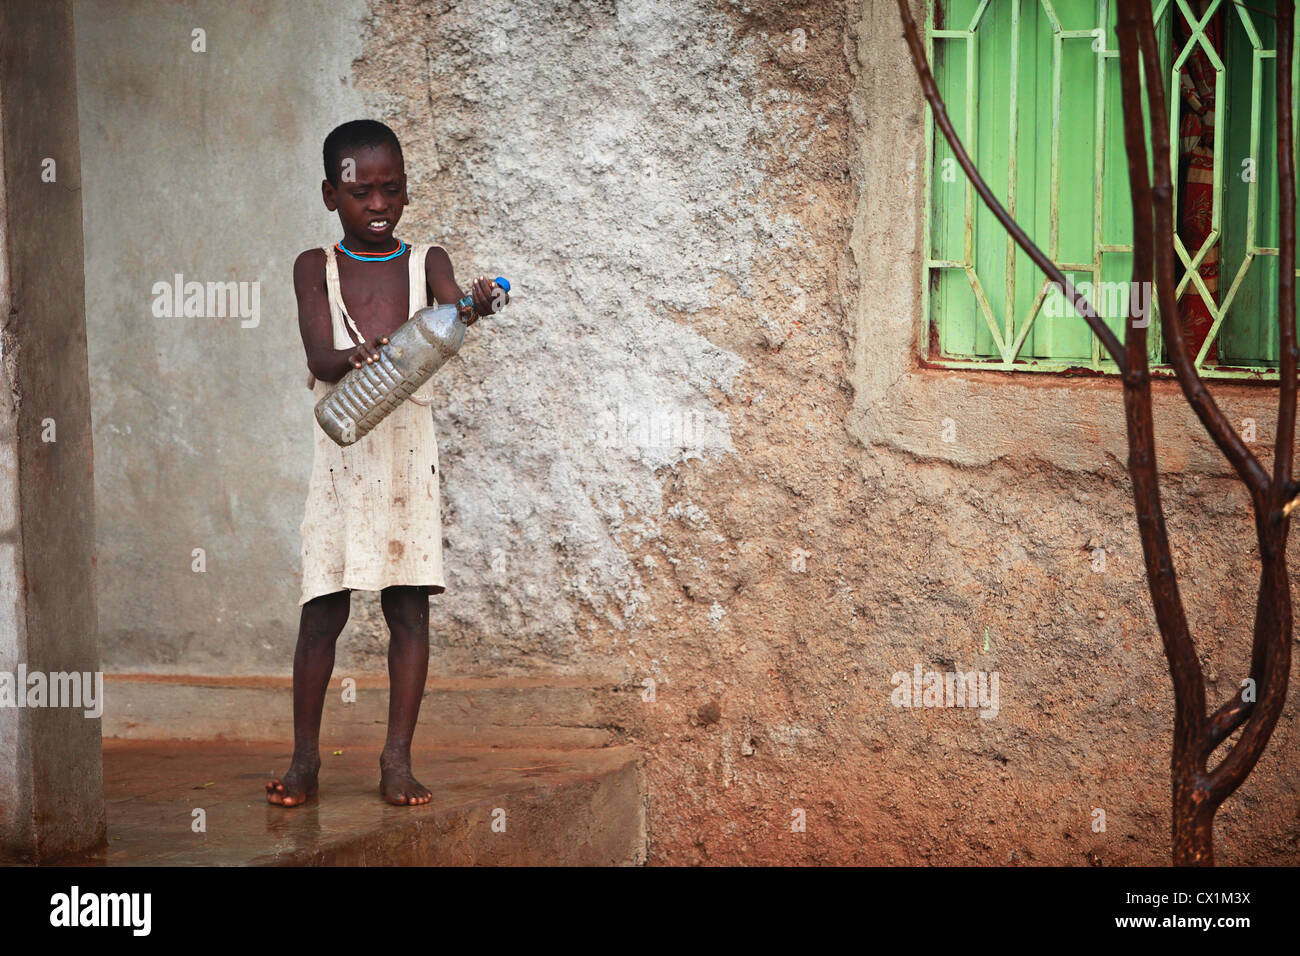 Young child trying to catch drops of rain in an empty bottle. - Stock Image